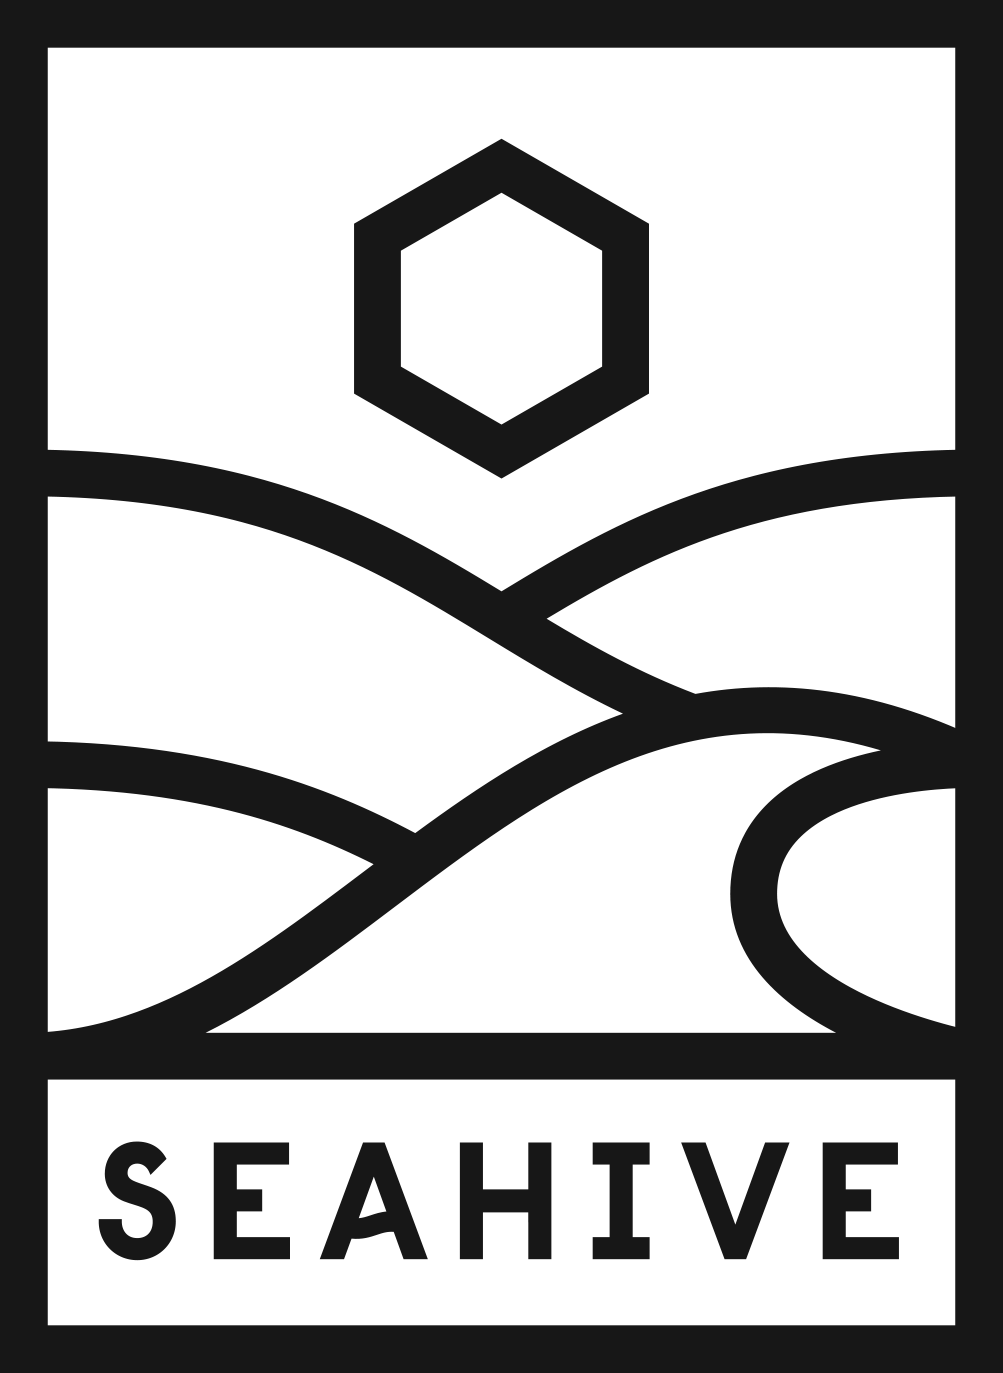 Seahive Pledge